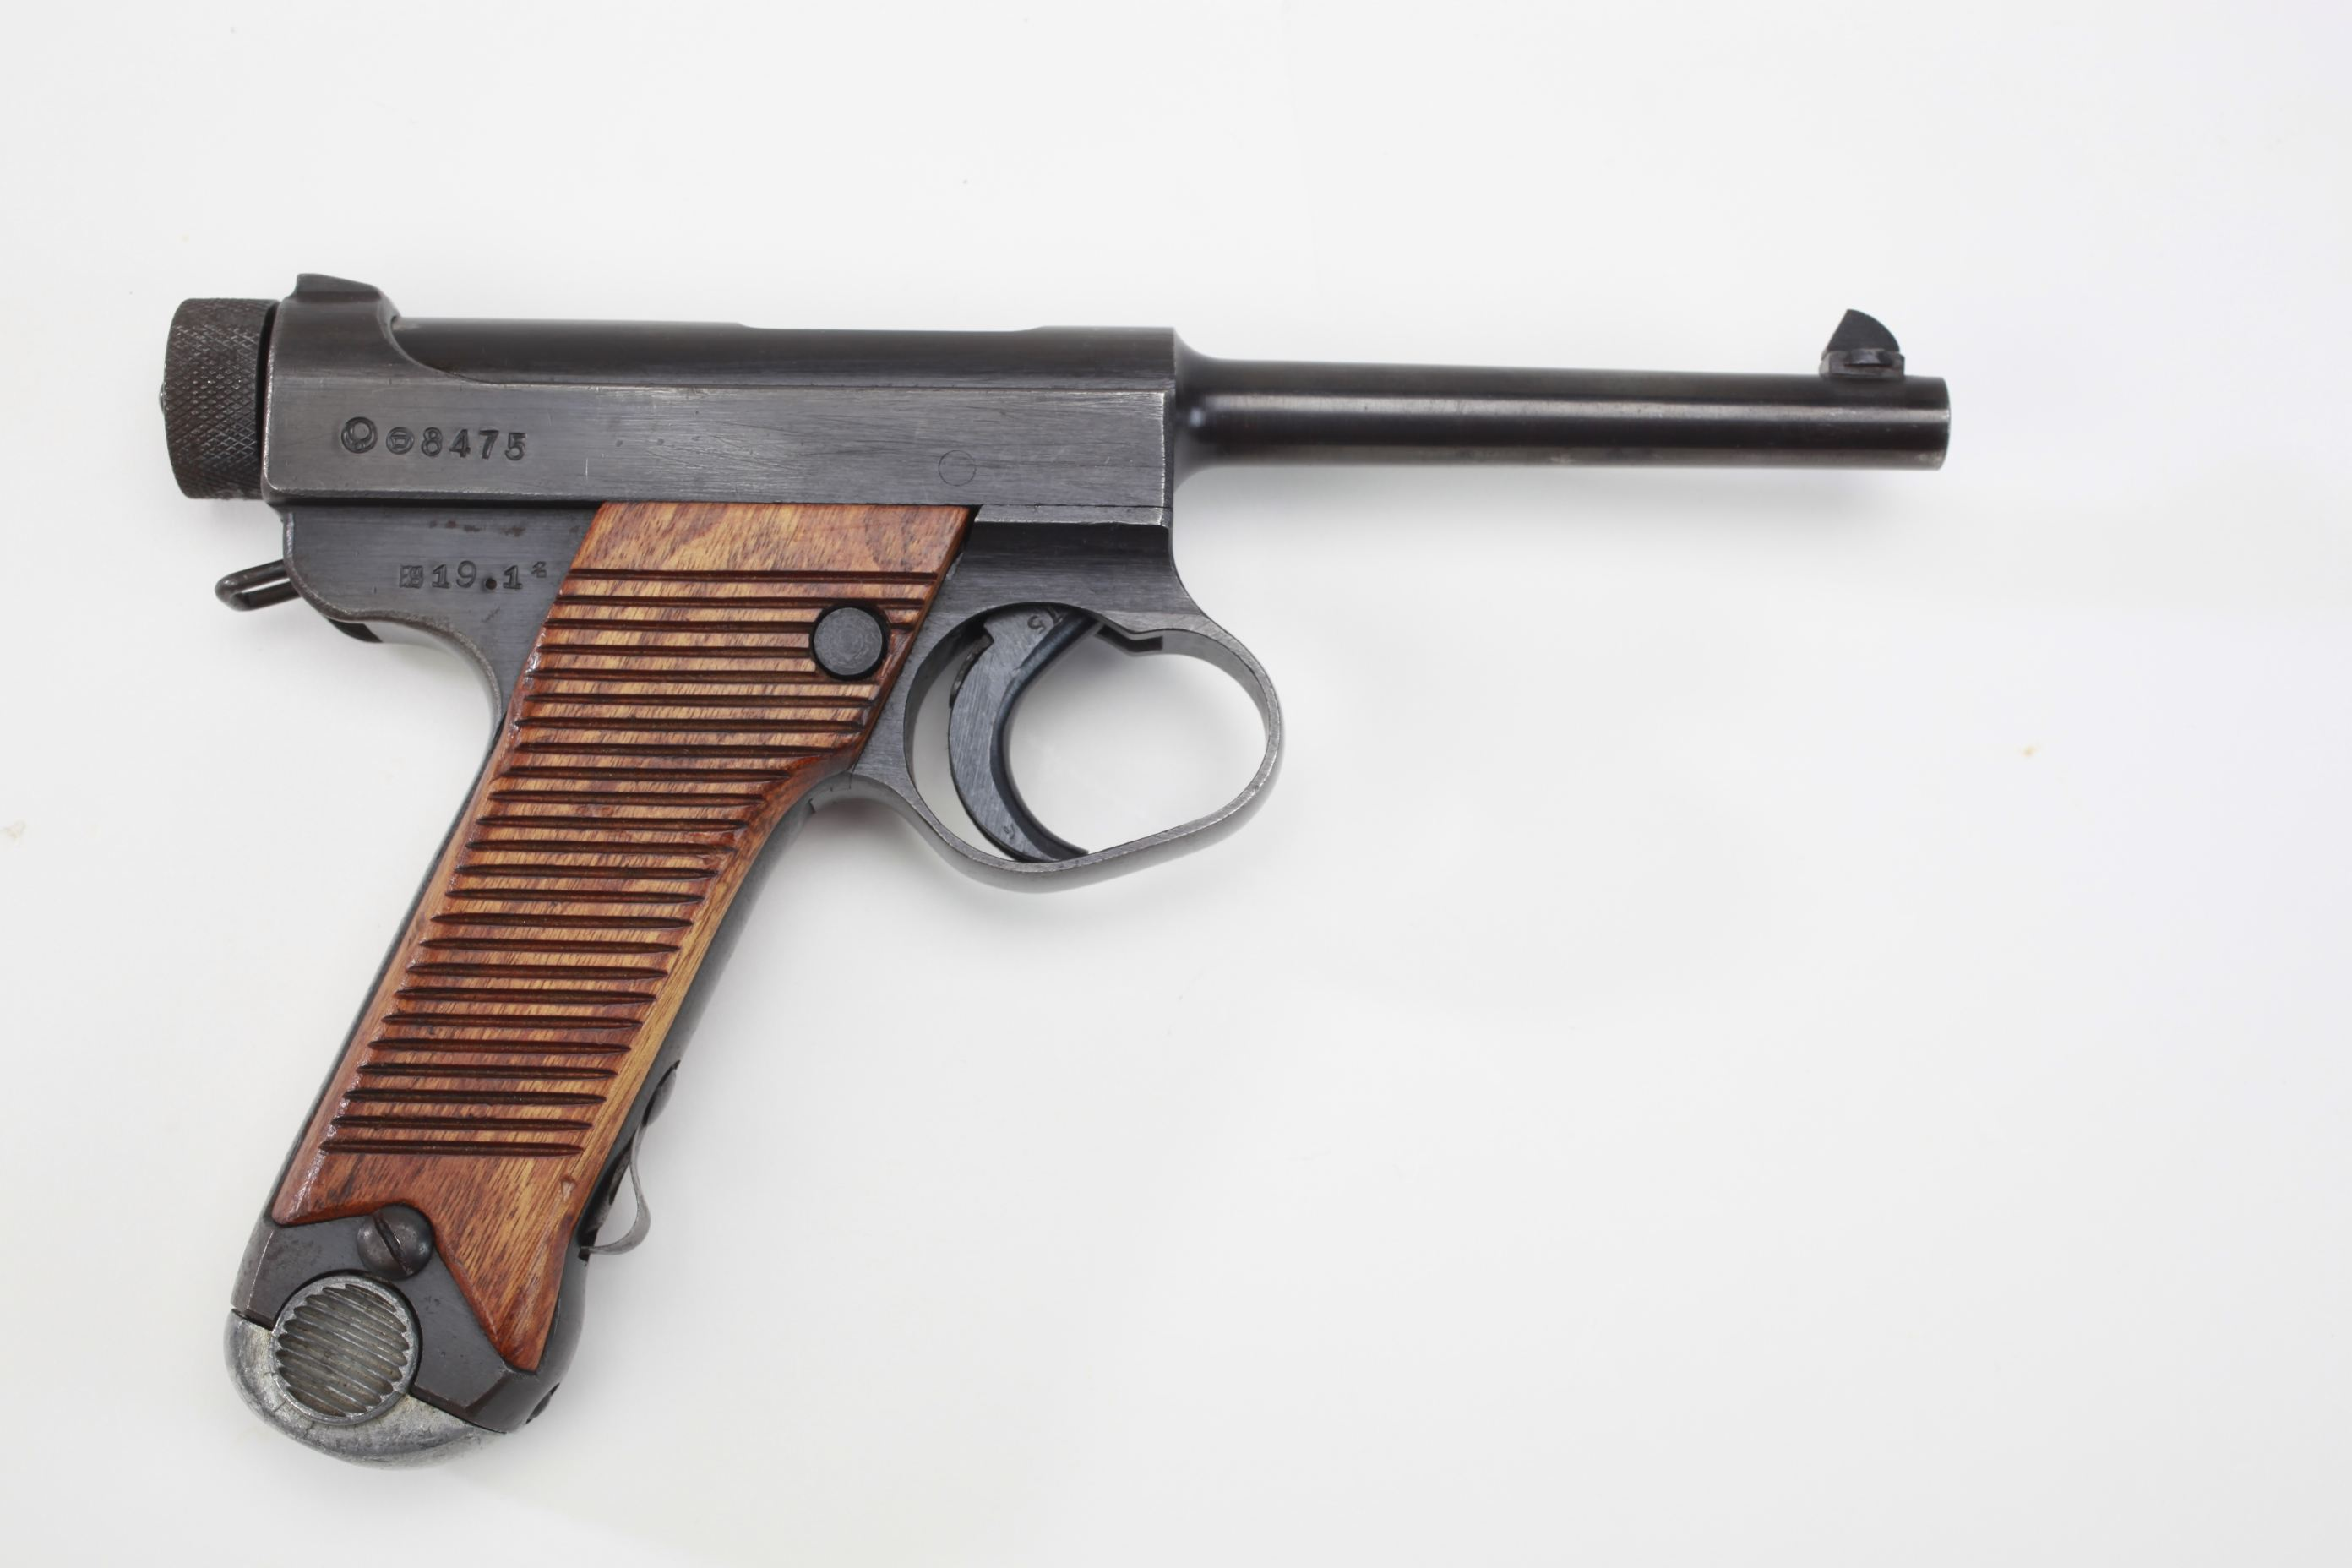 Nagoya Army Arsenal Type 14 Nambu Semi Automatic Pistol